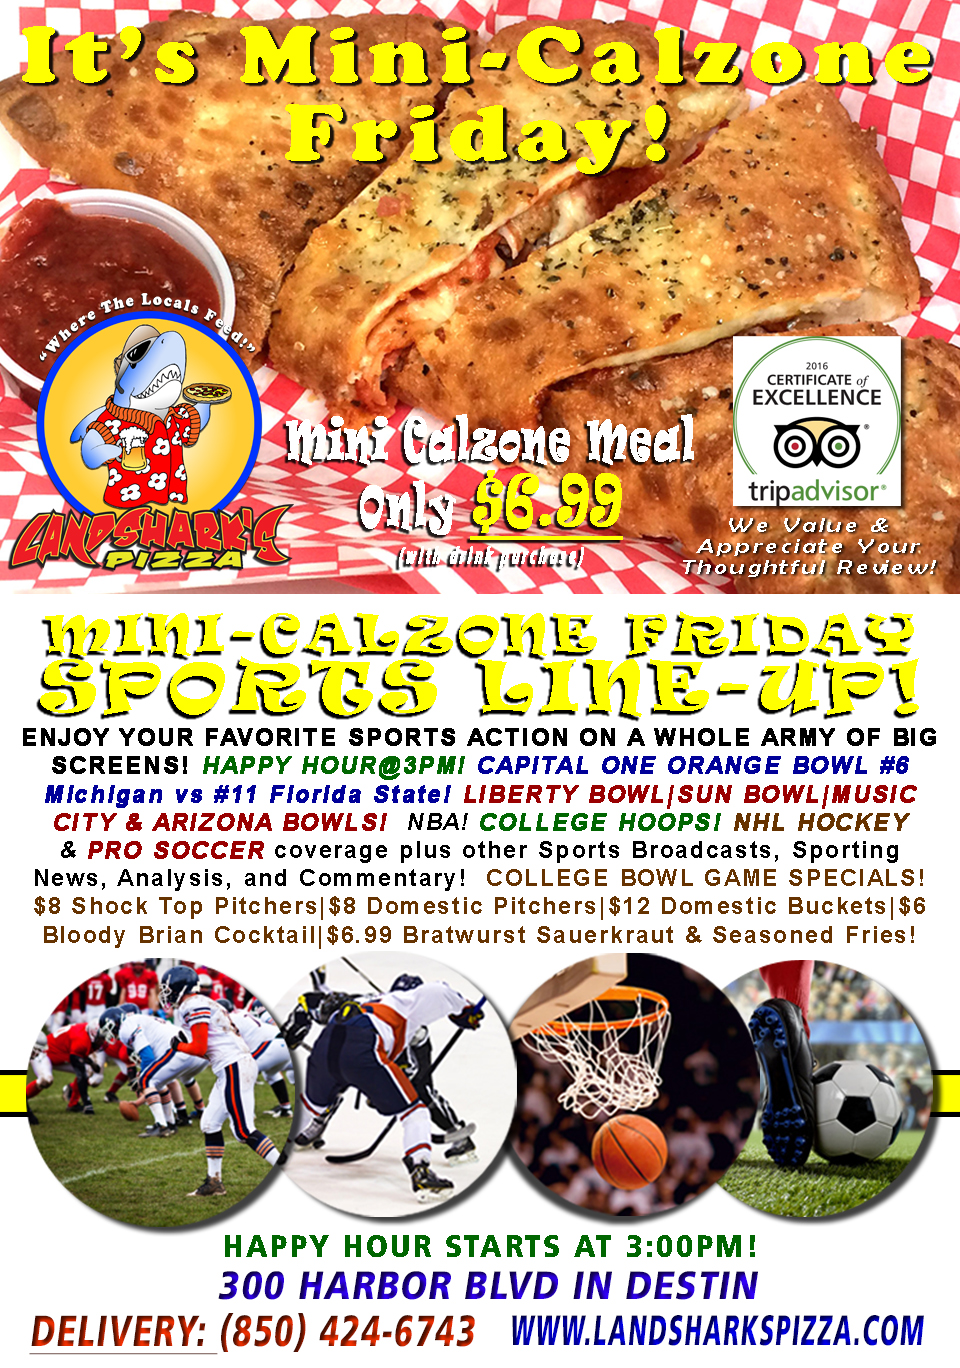 CELEBRATE FREEDOM FRIDAY $6.99 Calzone, The ORANGE BOWL & 4 OTHERS, COLLEGE HOOPS, NHL, NBA & More!